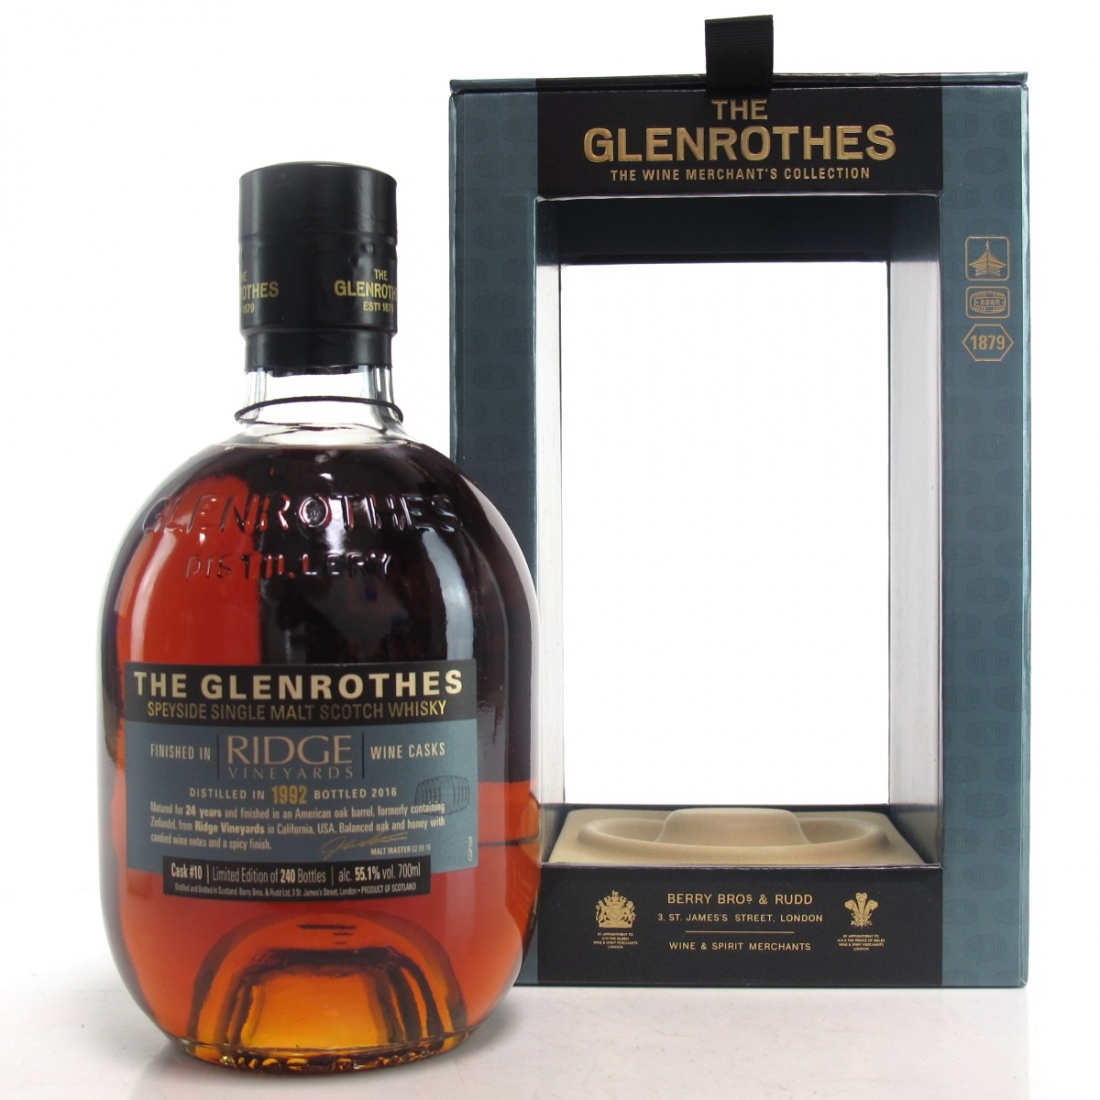 Glenrothes 1992 Ridge Zinfandel Cask Finish 24 Year Old / Wine Merchant's Collection